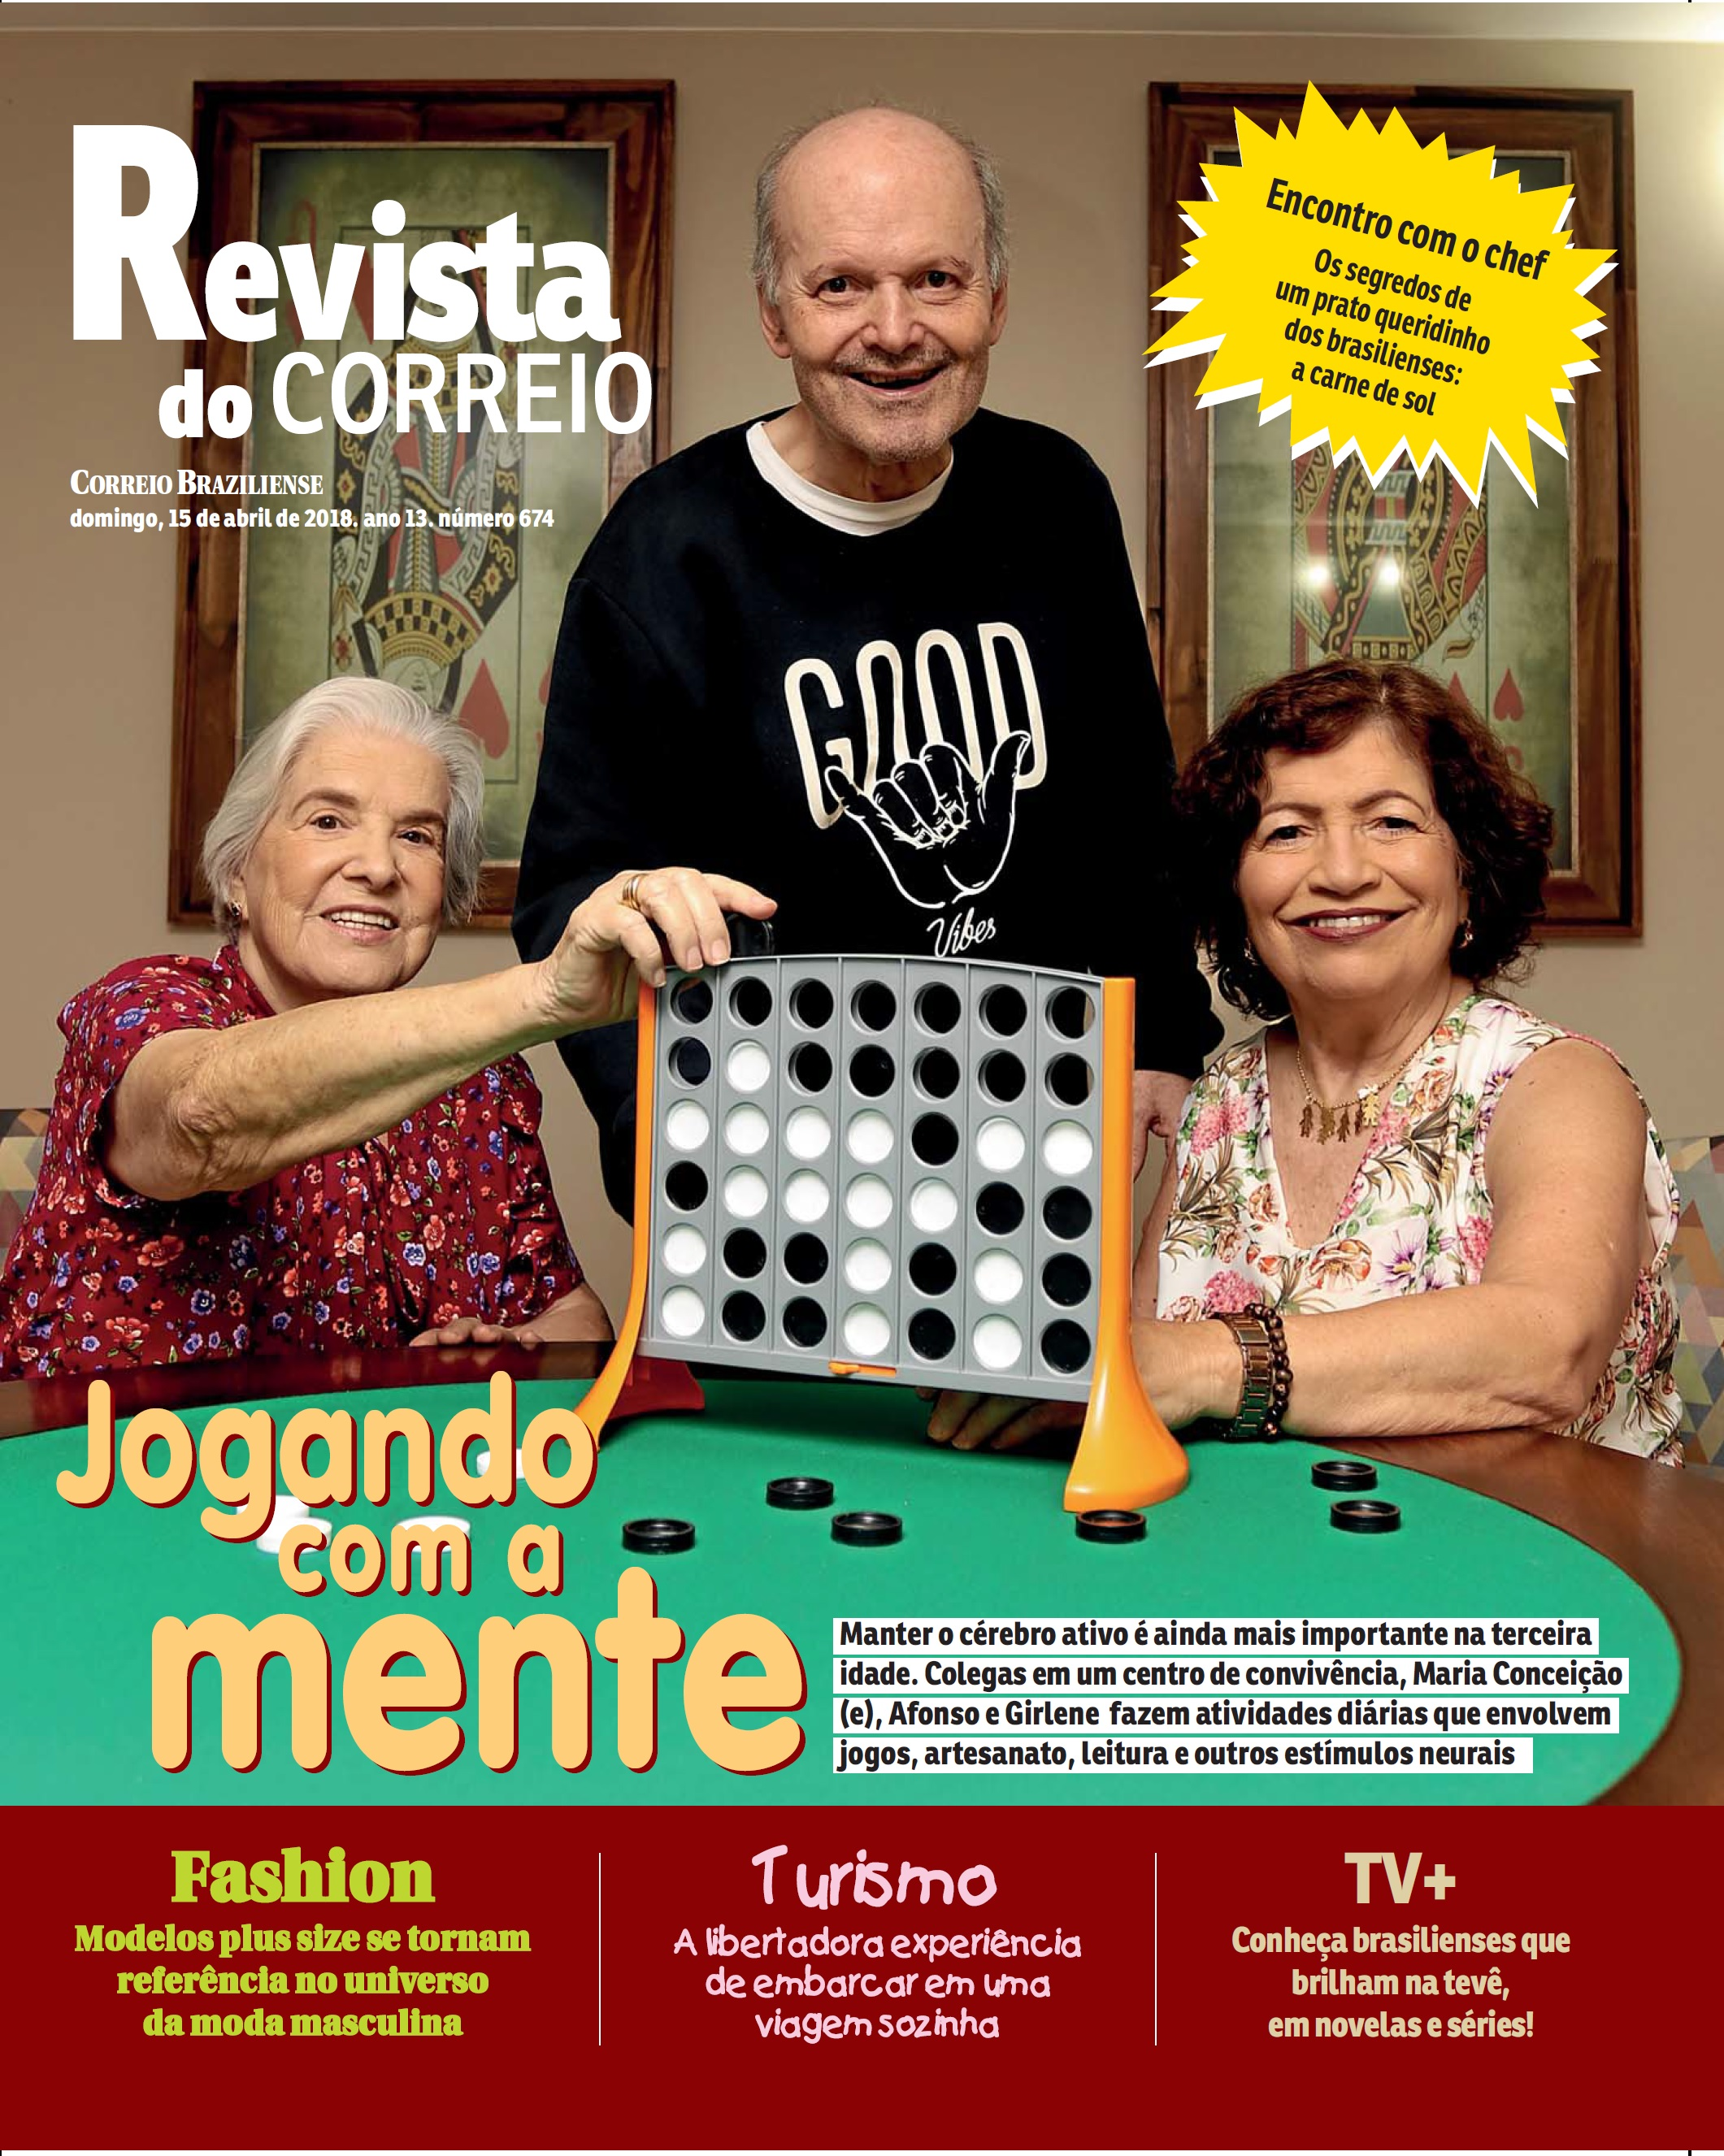 Revista do Correio - Estímulo Cerebral - 15-04-2018 [CAPA]